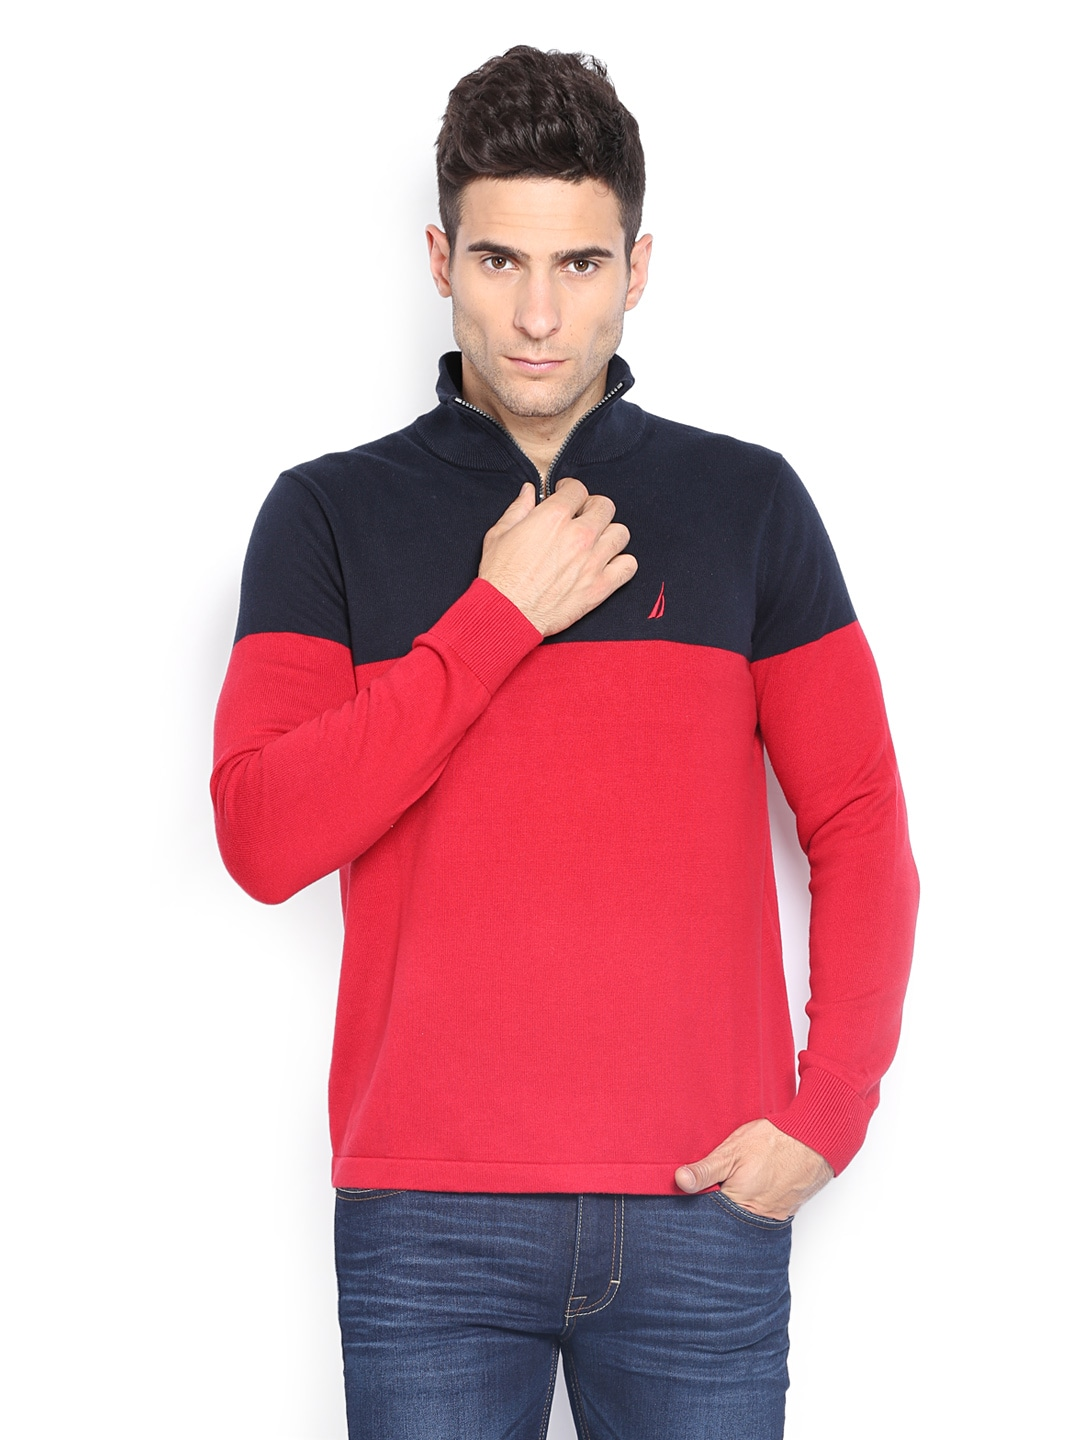 Nautica nts434106nr,6nr Men Red And Navy Sweater, Price in India